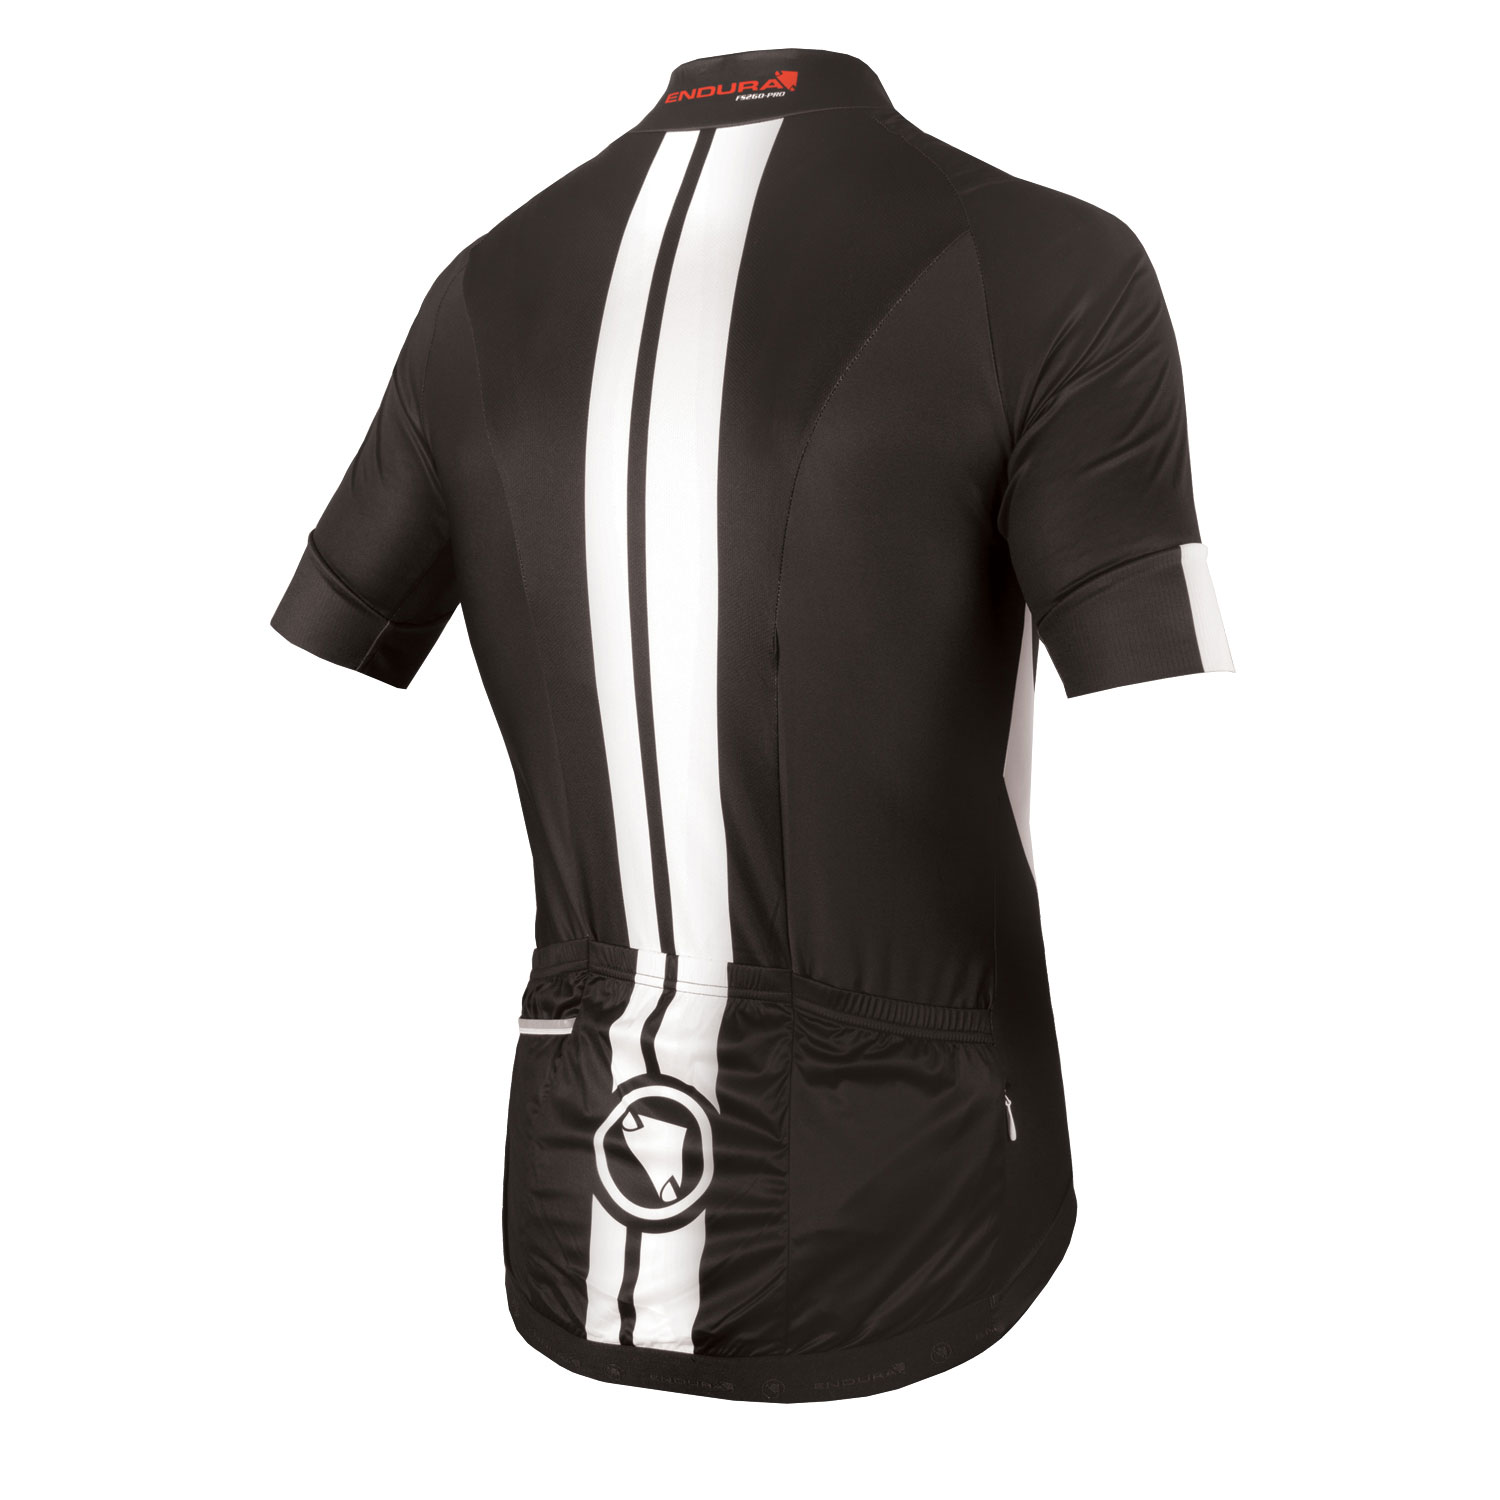 FS260-Pro Jetstream Jersey Black